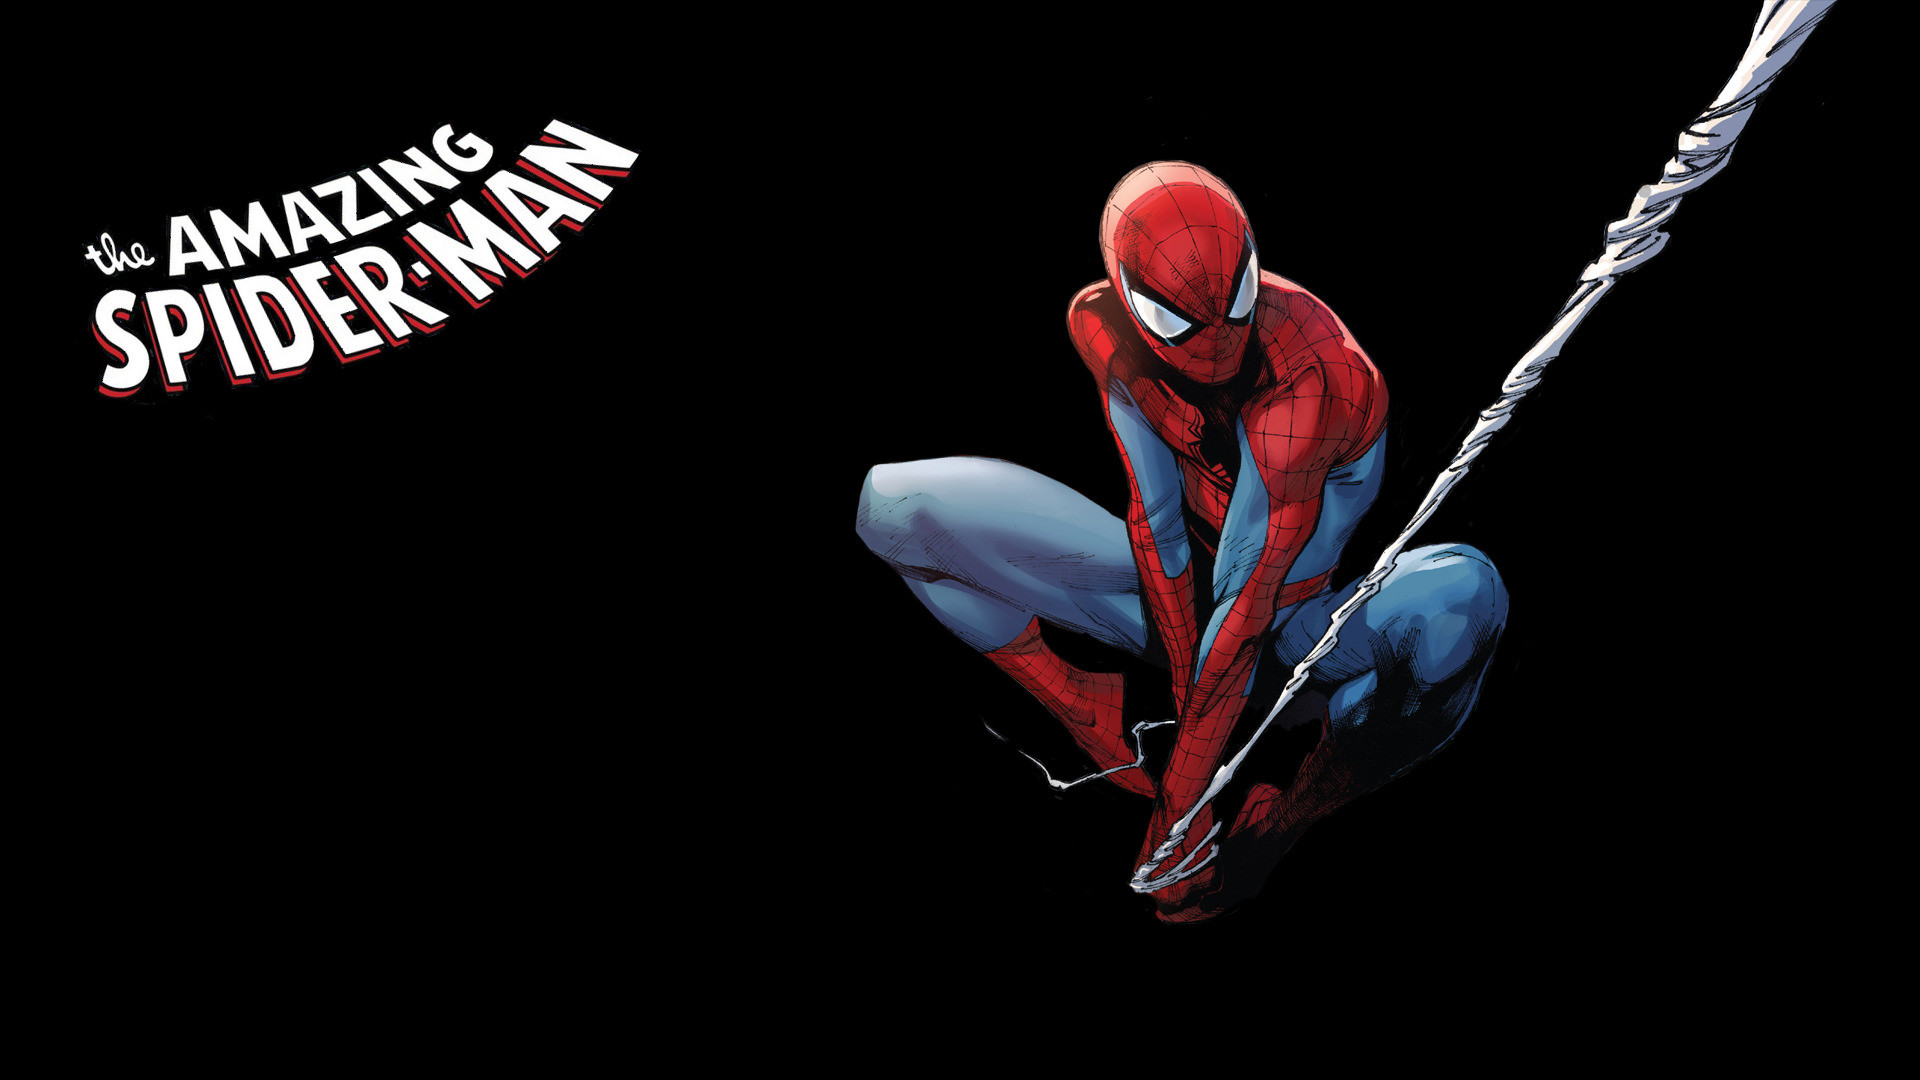 1920x1080 Spider Man, Marvel Comics, Iron Fist Wallpapers HD / Desktop and Mobile  Backgrounds